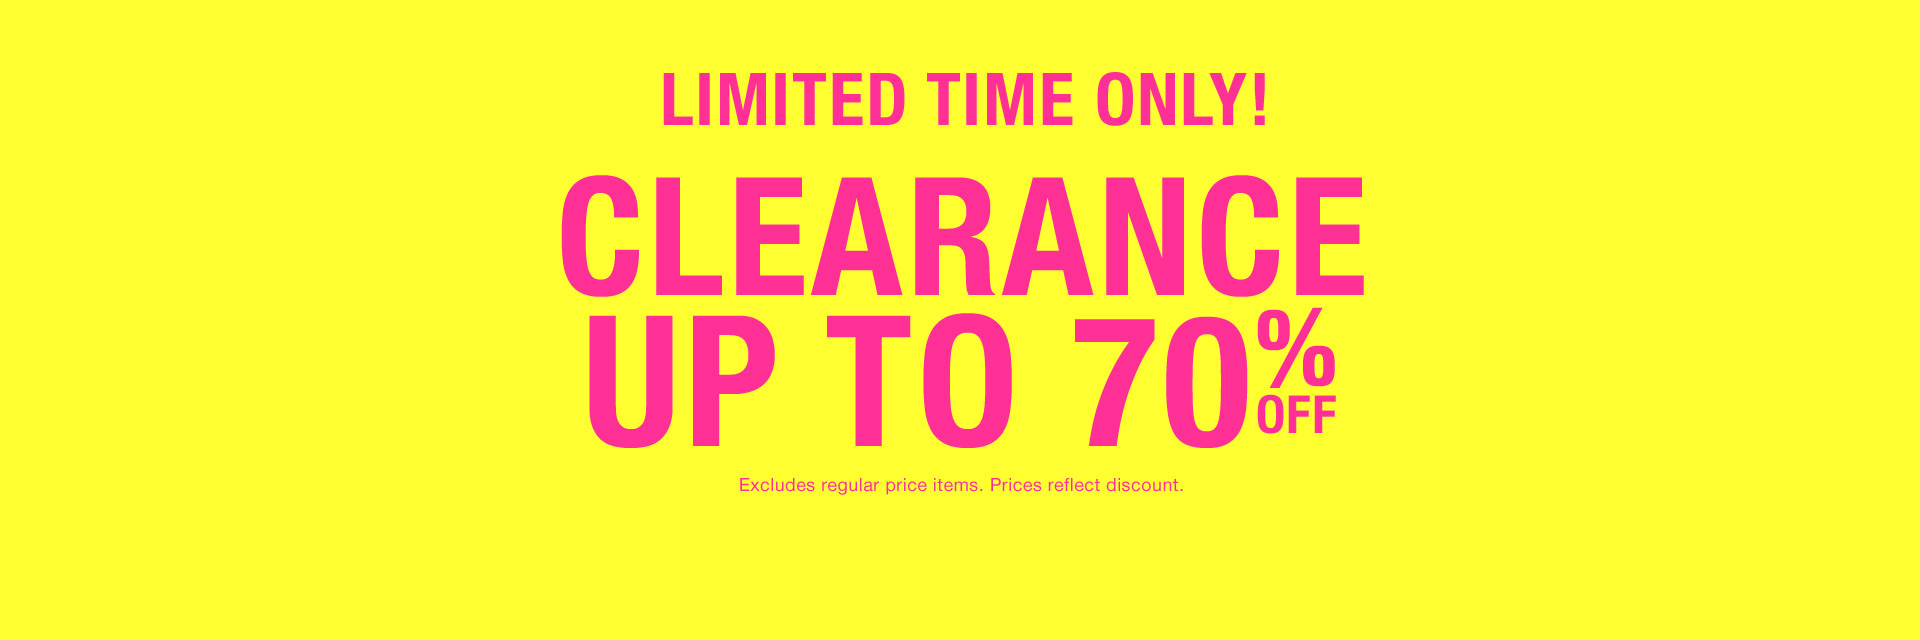 Limited time only! Clearance up to 70% off. Excludes regular price items. Prices reflect discount.